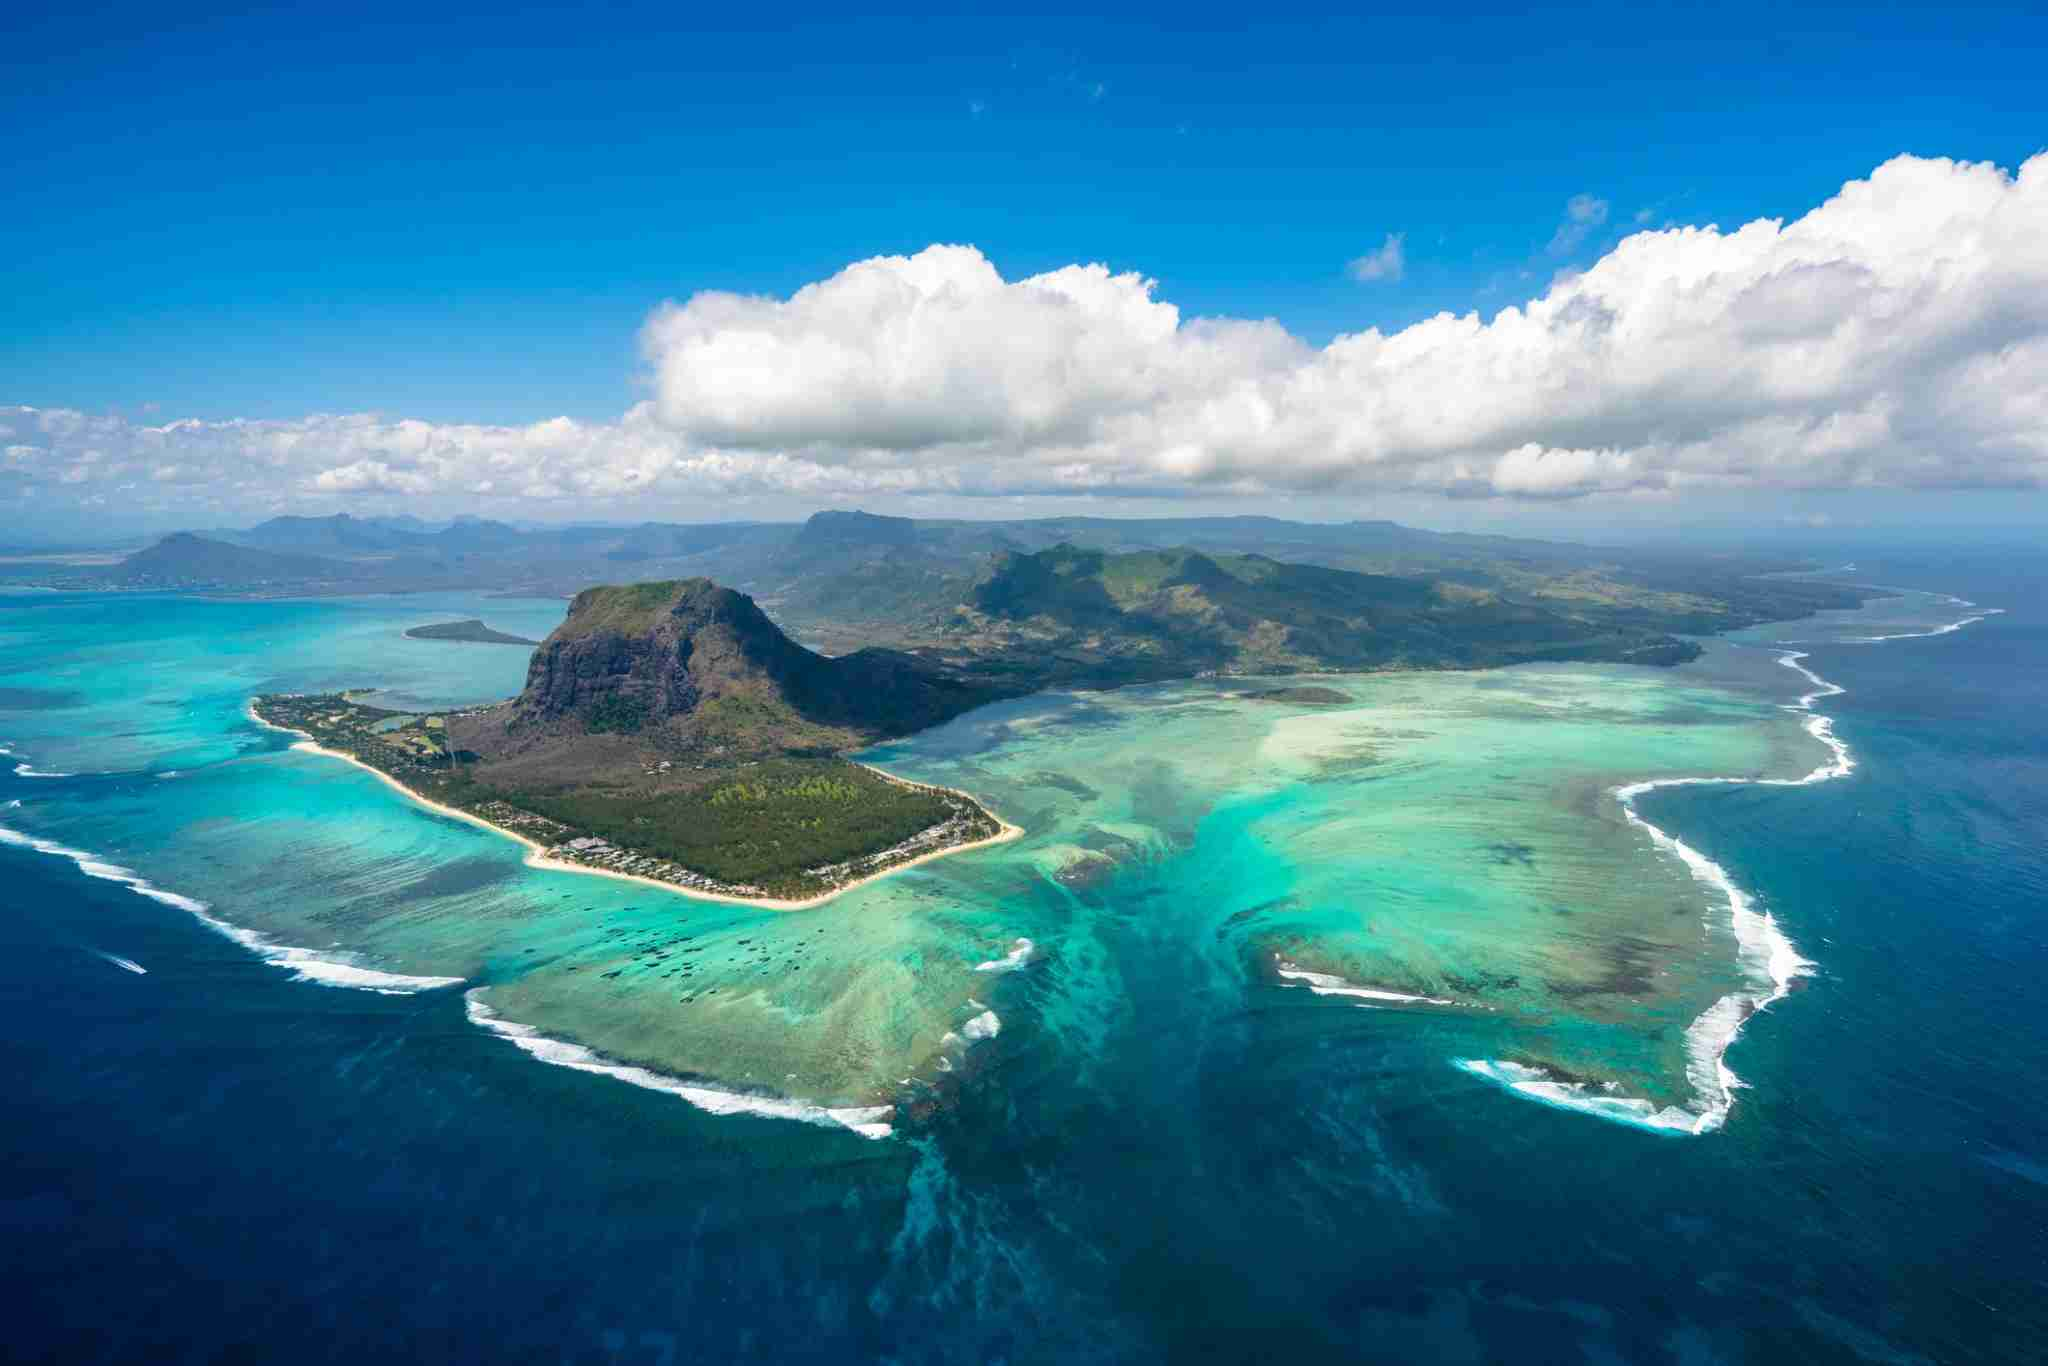 The turquoise waters of Mauritius (Photo by Norbert Figueroa/EyeEm via Getty Images)